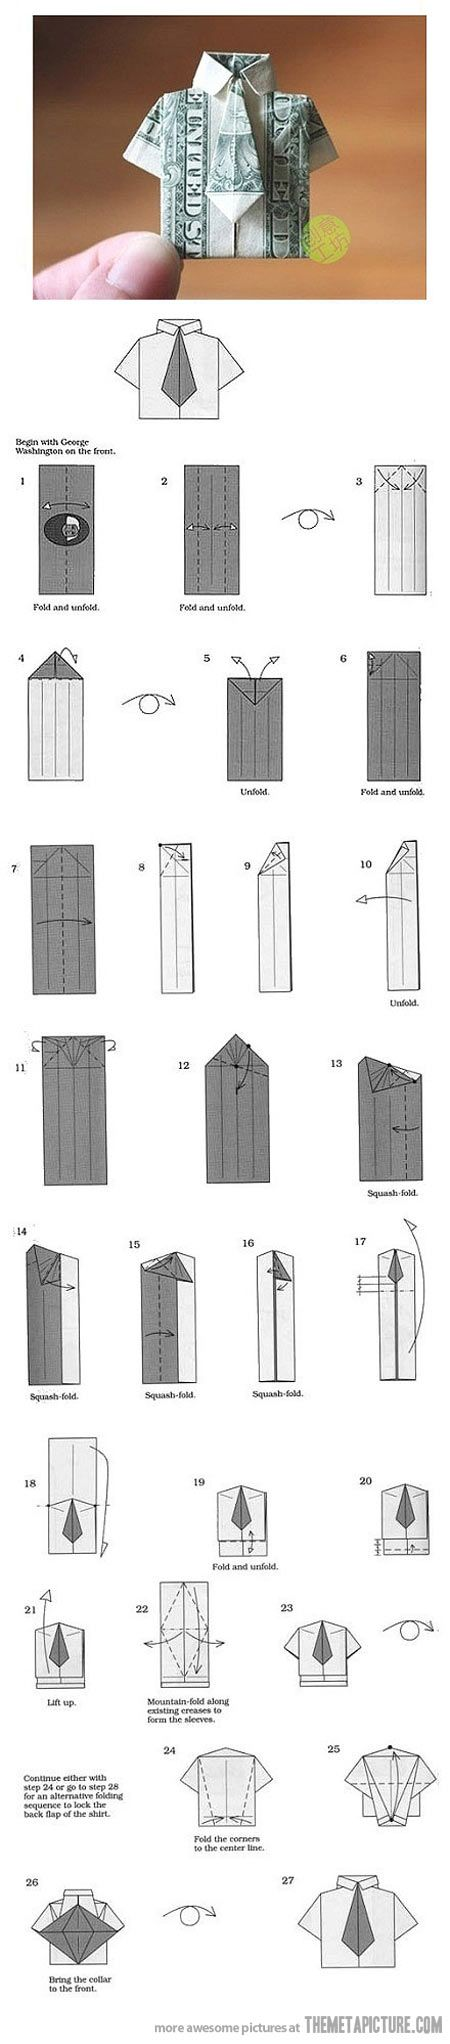 This money-folding instruction sheet teaches you how to fold a dollar bill into a dress shirt with tie. Now that's cool.